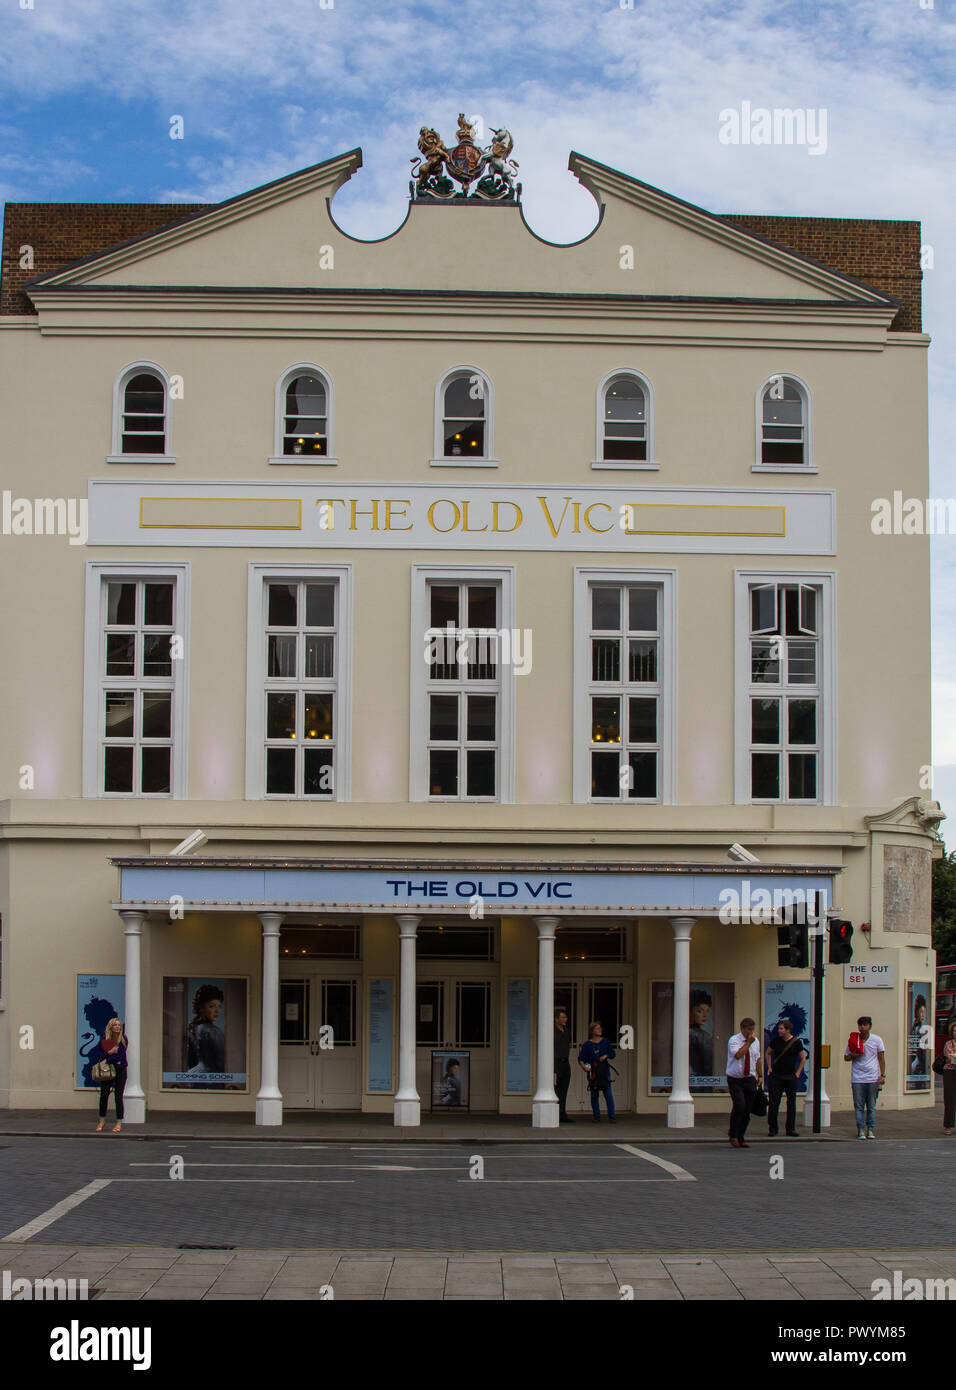 Old Vic Theatre Building South London - Stock Image